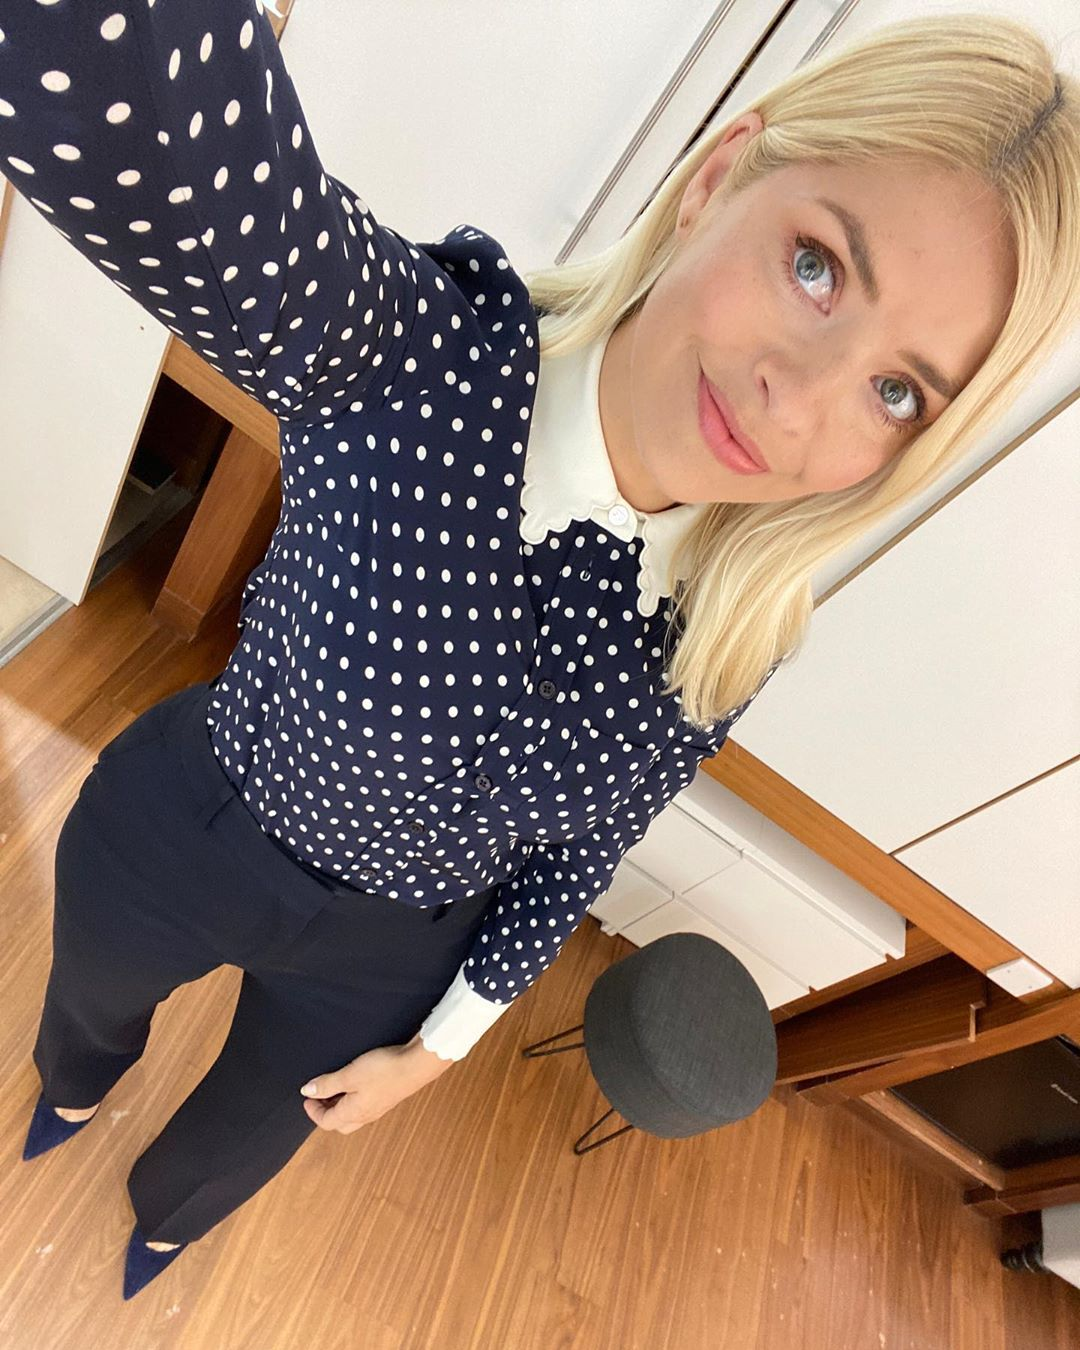 where to get all holly willoughby This Morning outfits navy blue and white polka dot shirt navy trousers 4 June 2020 Photo Holly Willoughby